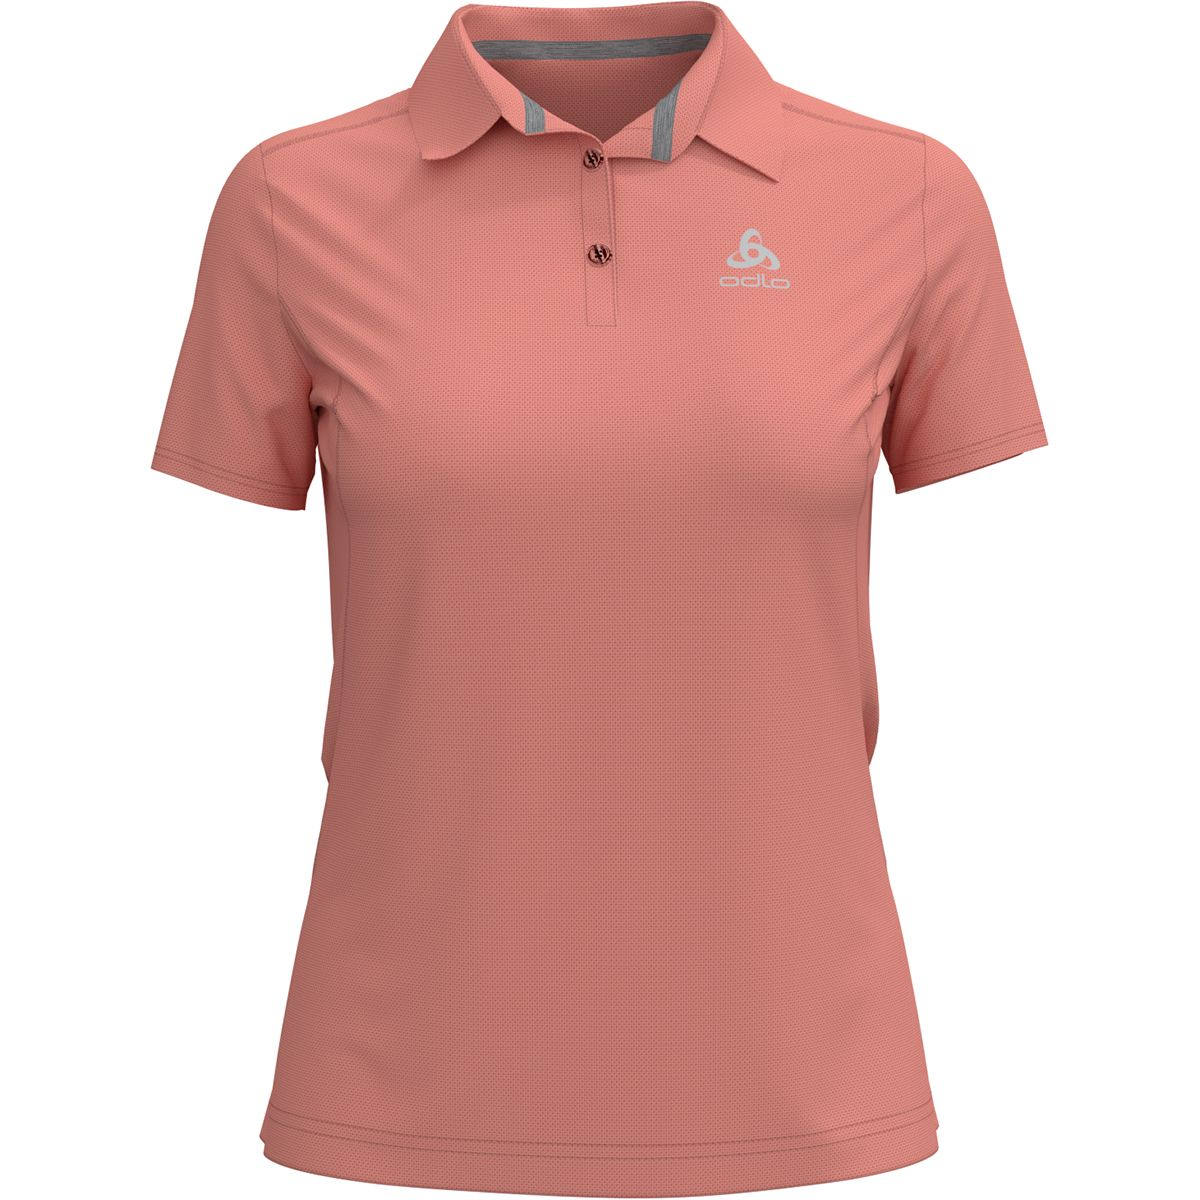 Odlo Damen Polo Shirt S/s F-dry (Größe M, Orange) | T-Shirts Funktion > Damen